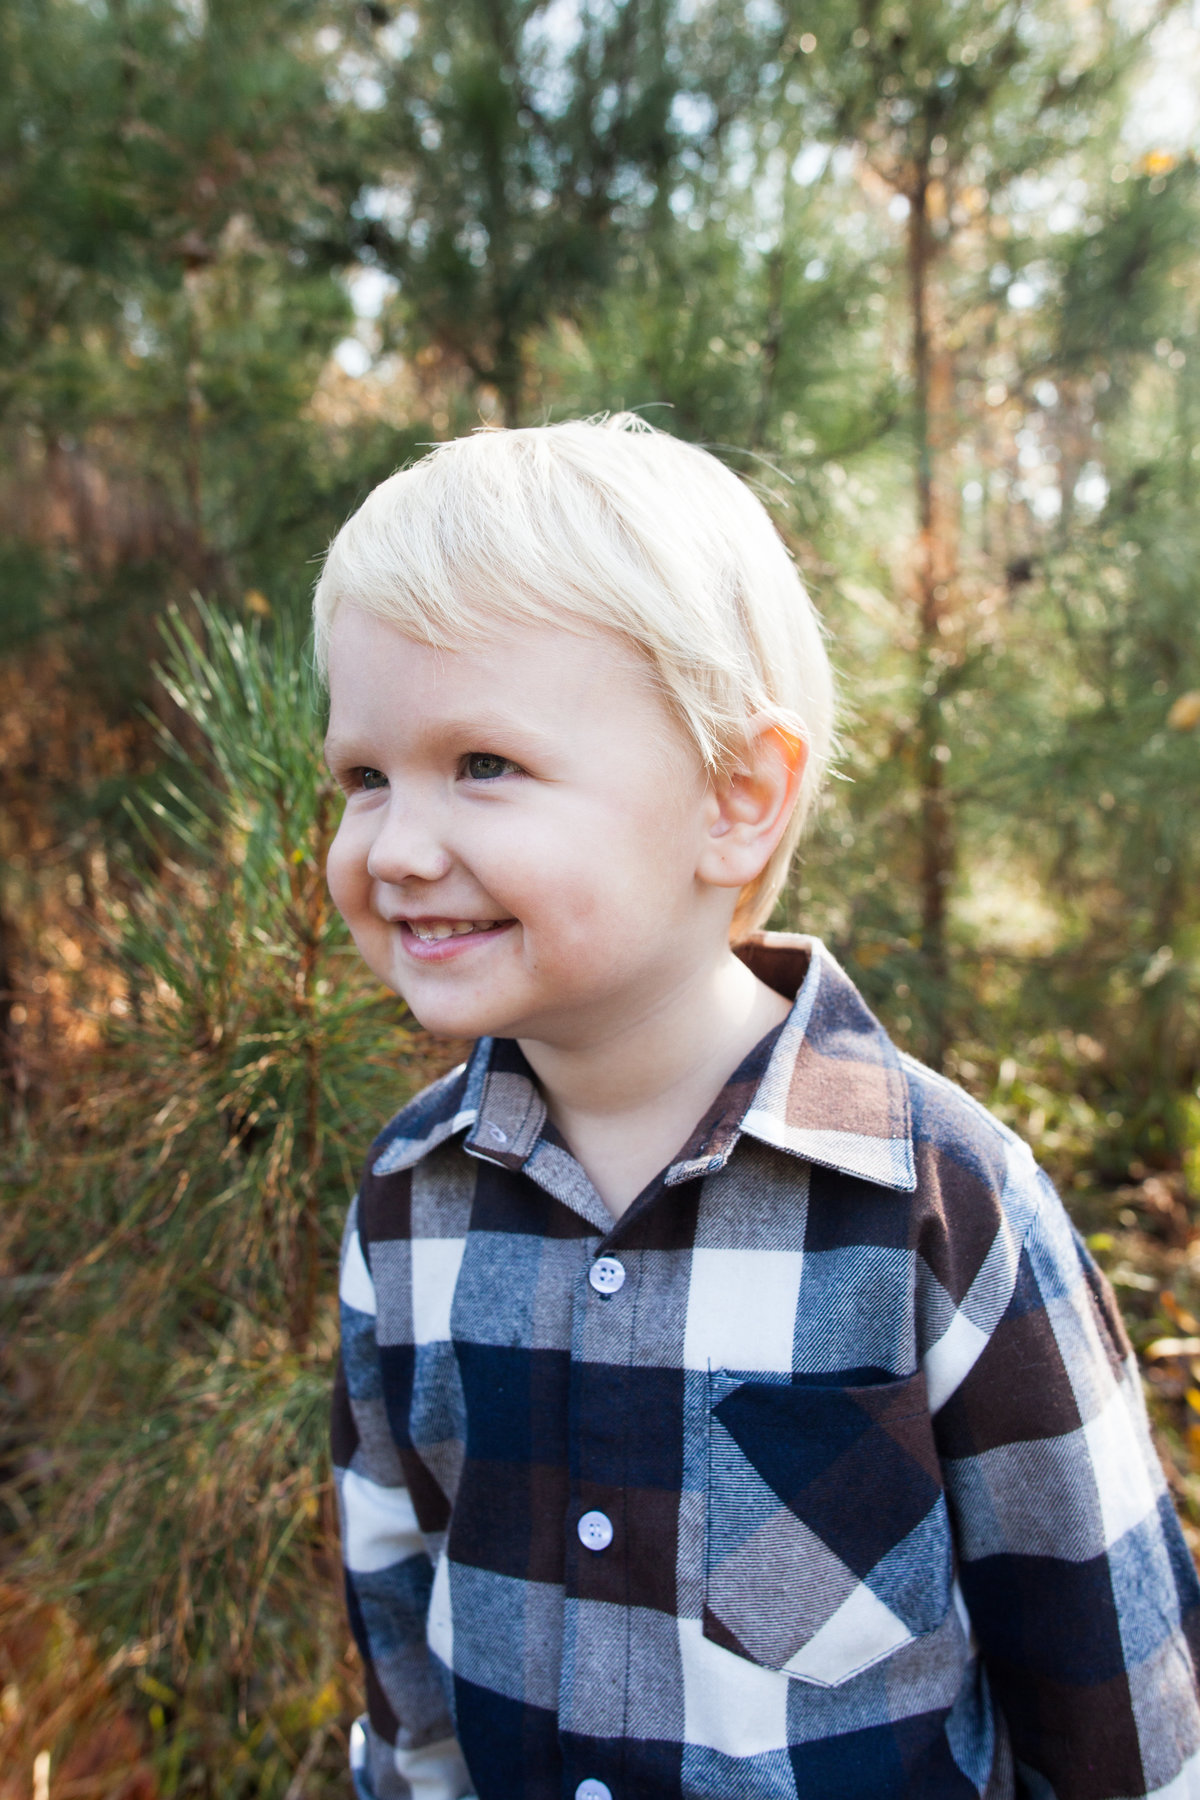 North-Carolina-Family-Photographer-Lindsay-Corrigan-0314